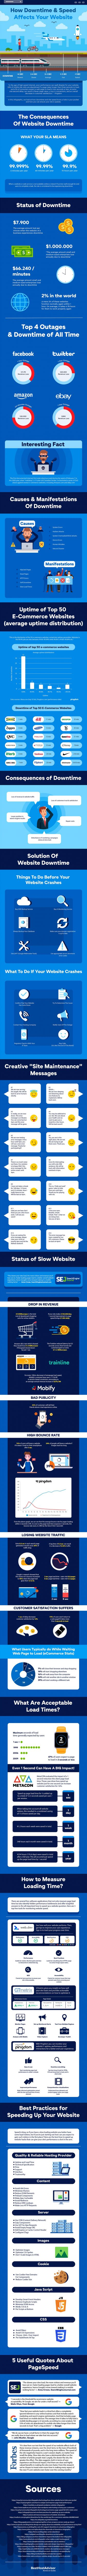 the-impact-of-downtime-and-slow-speed-on-your-website-min-1-339x9999-1